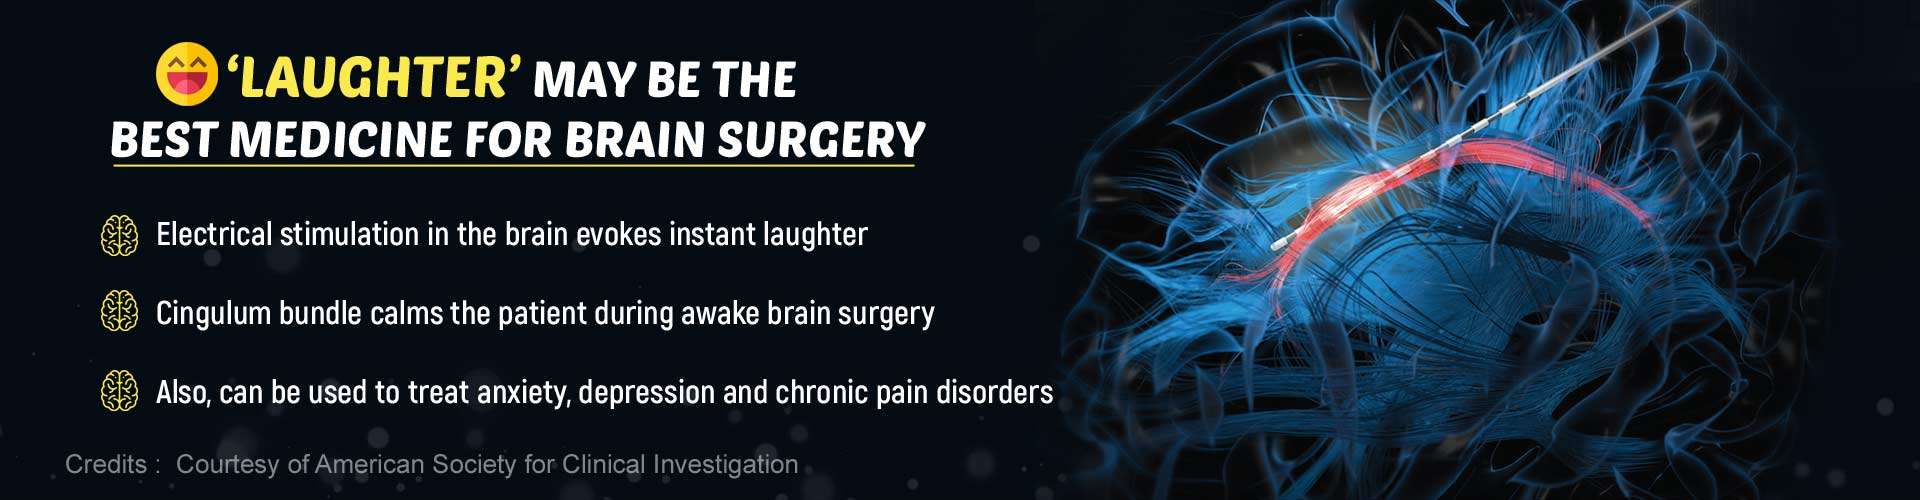 Laughter Helps Keep Patients Calm During Brain Surgery